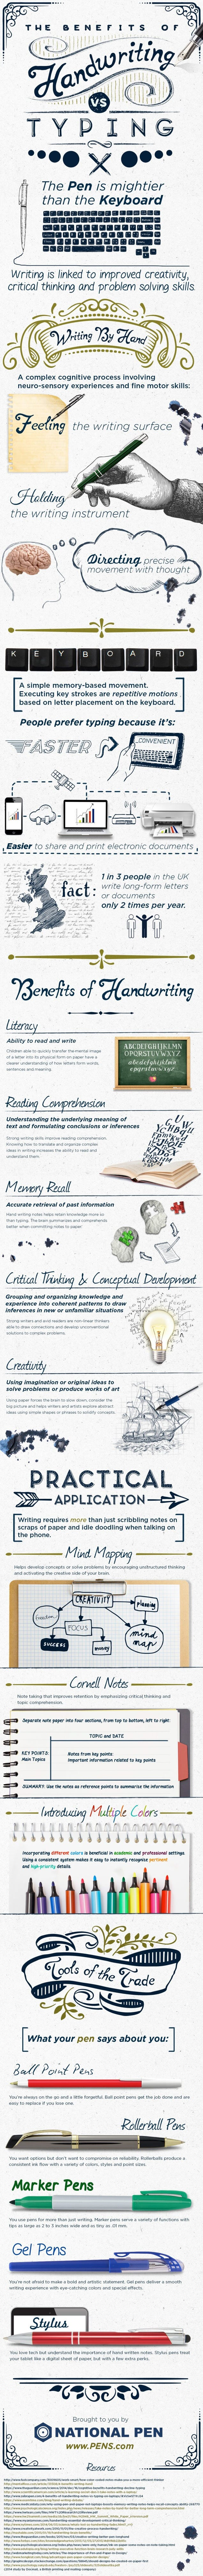 The Benefits of Writing by Hand Versus Typing